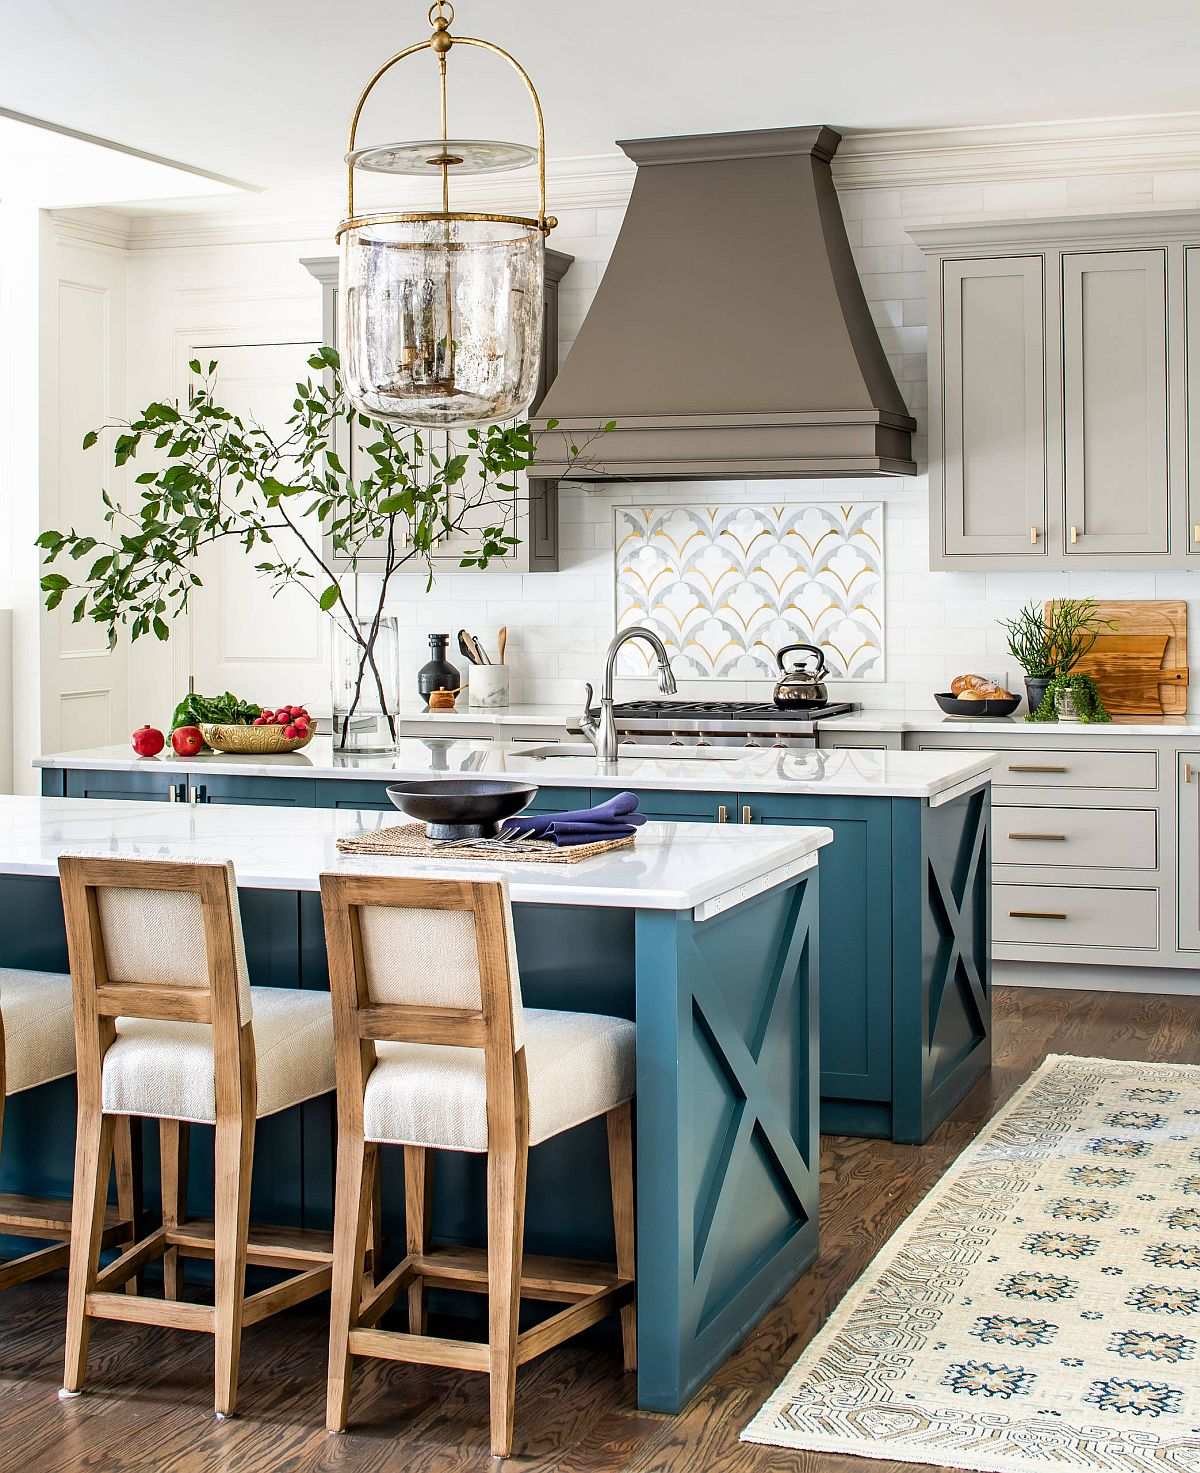 Find a shade of teal wth bluish dominance that you love for the kitchen island